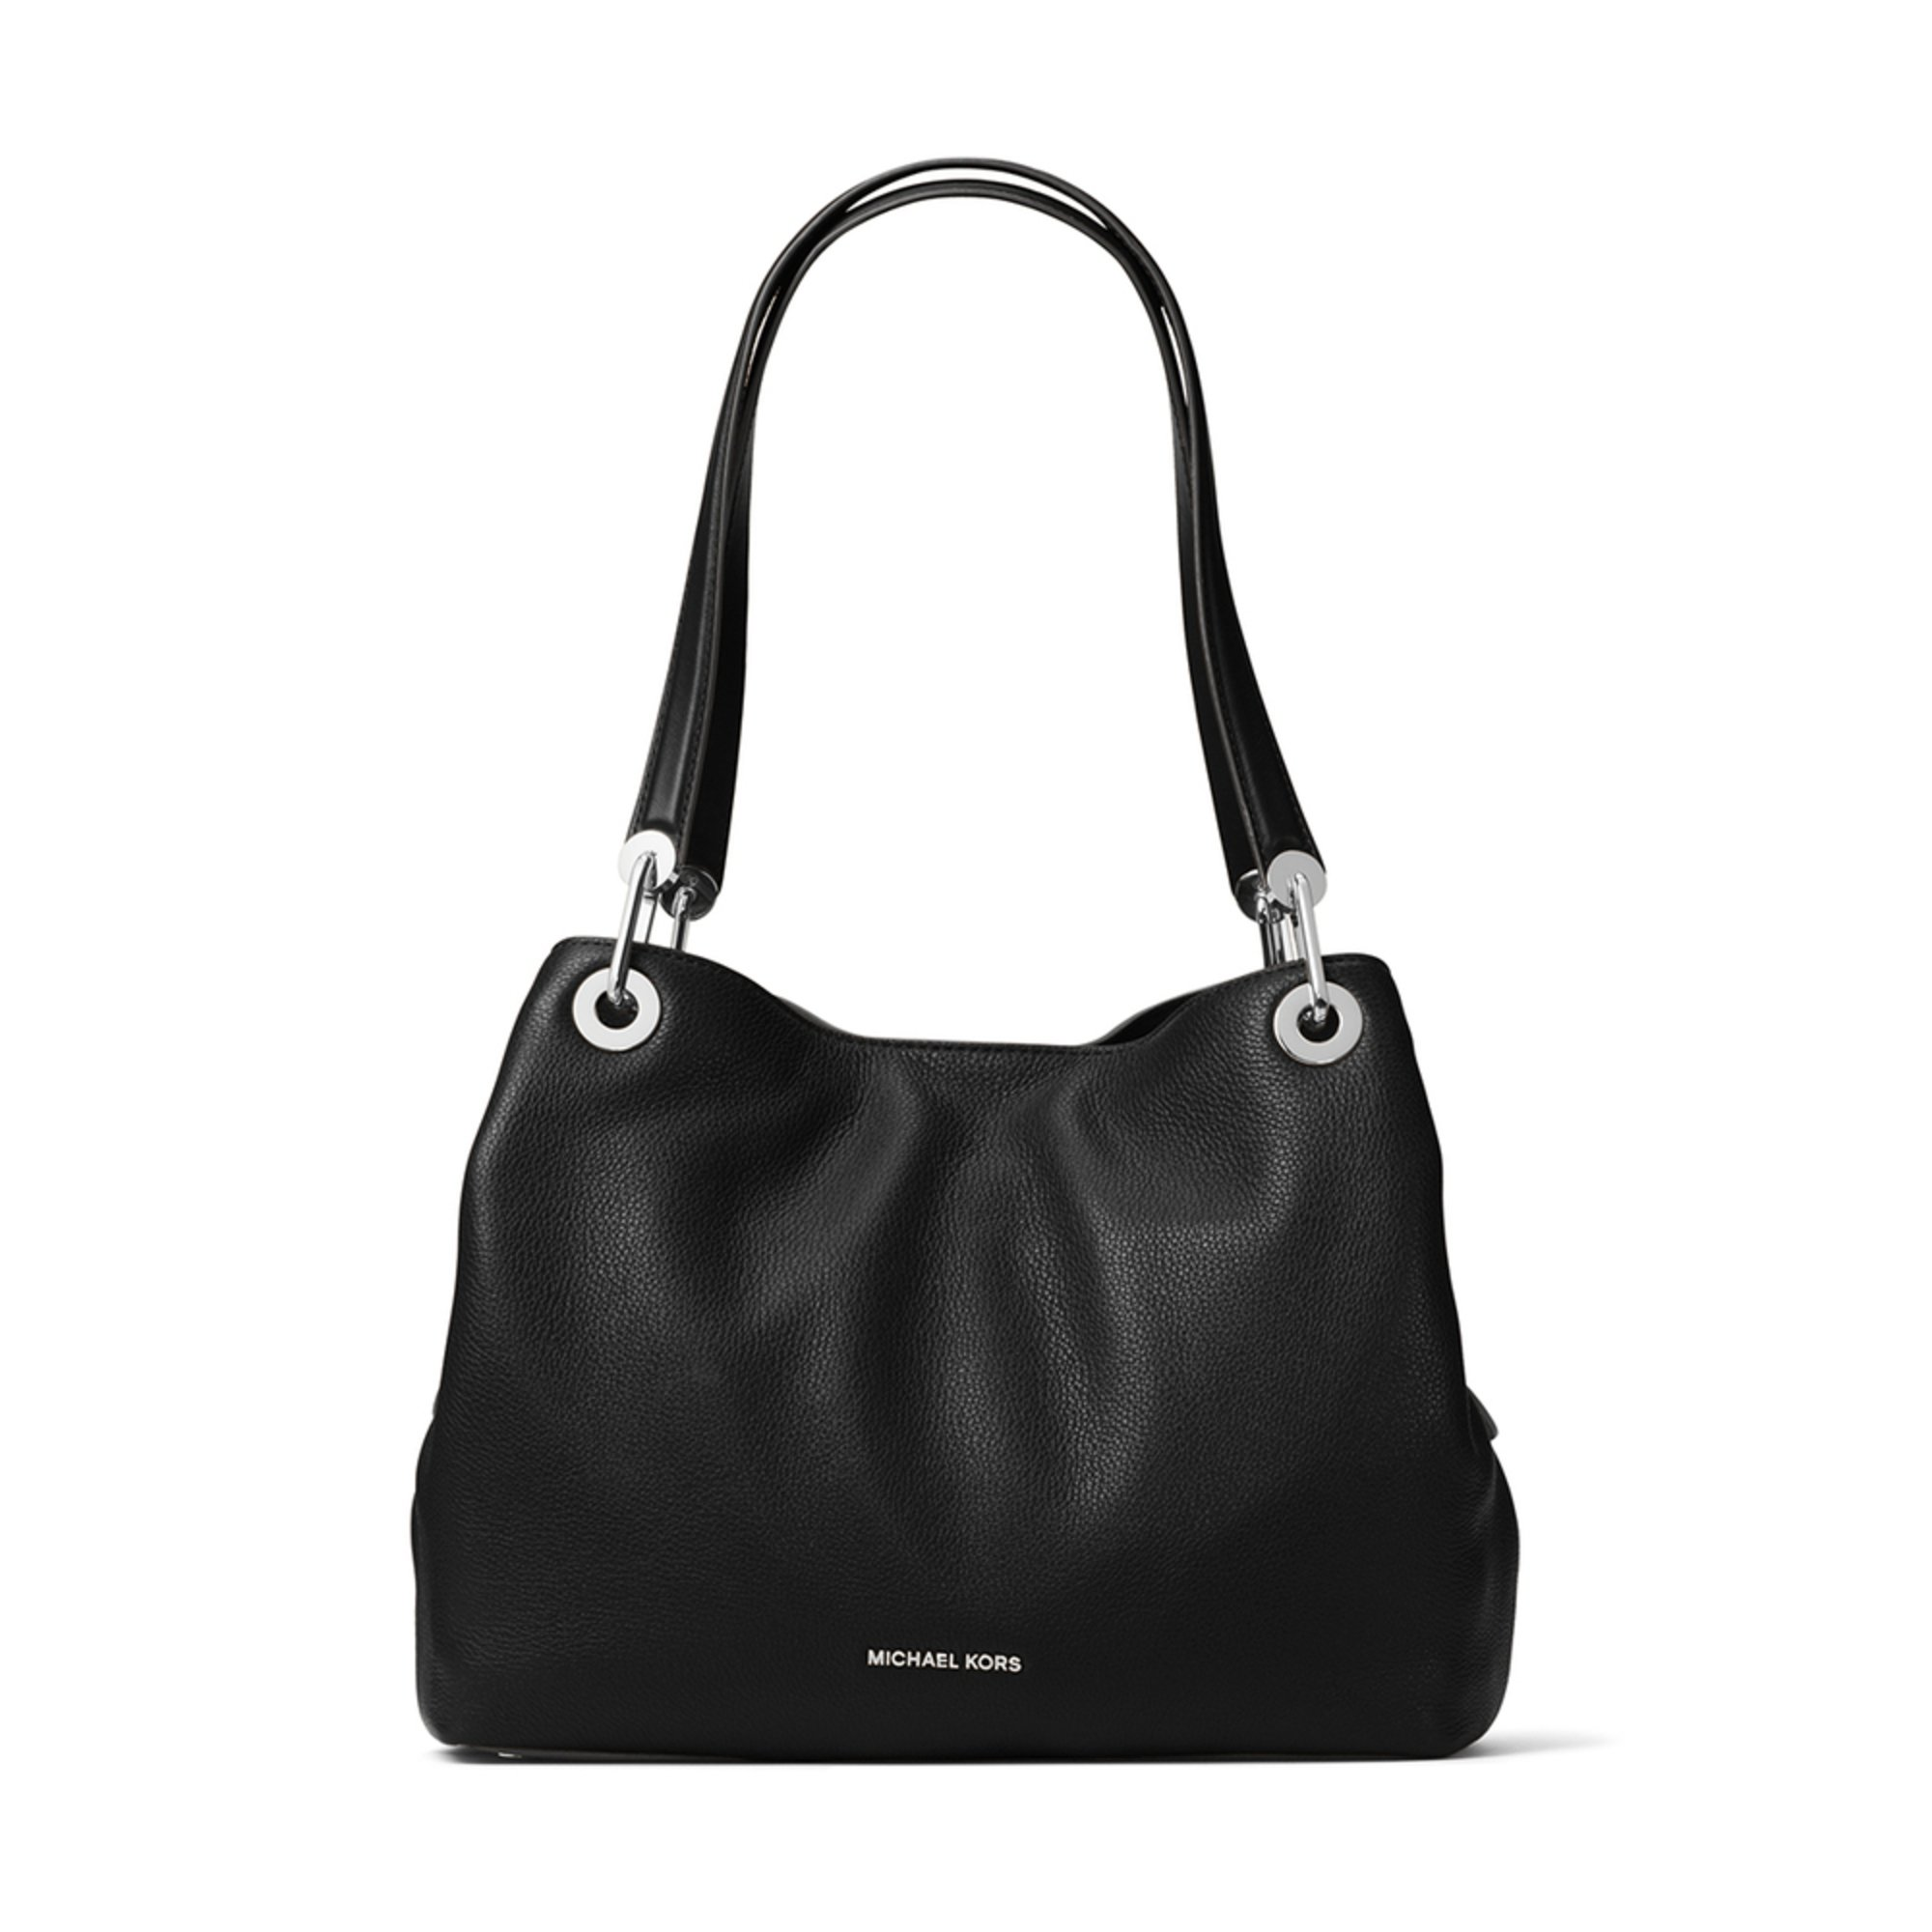 816c85204565 Michael Kors Black Tote Bag Silver Hardware | Stanford Center for ...